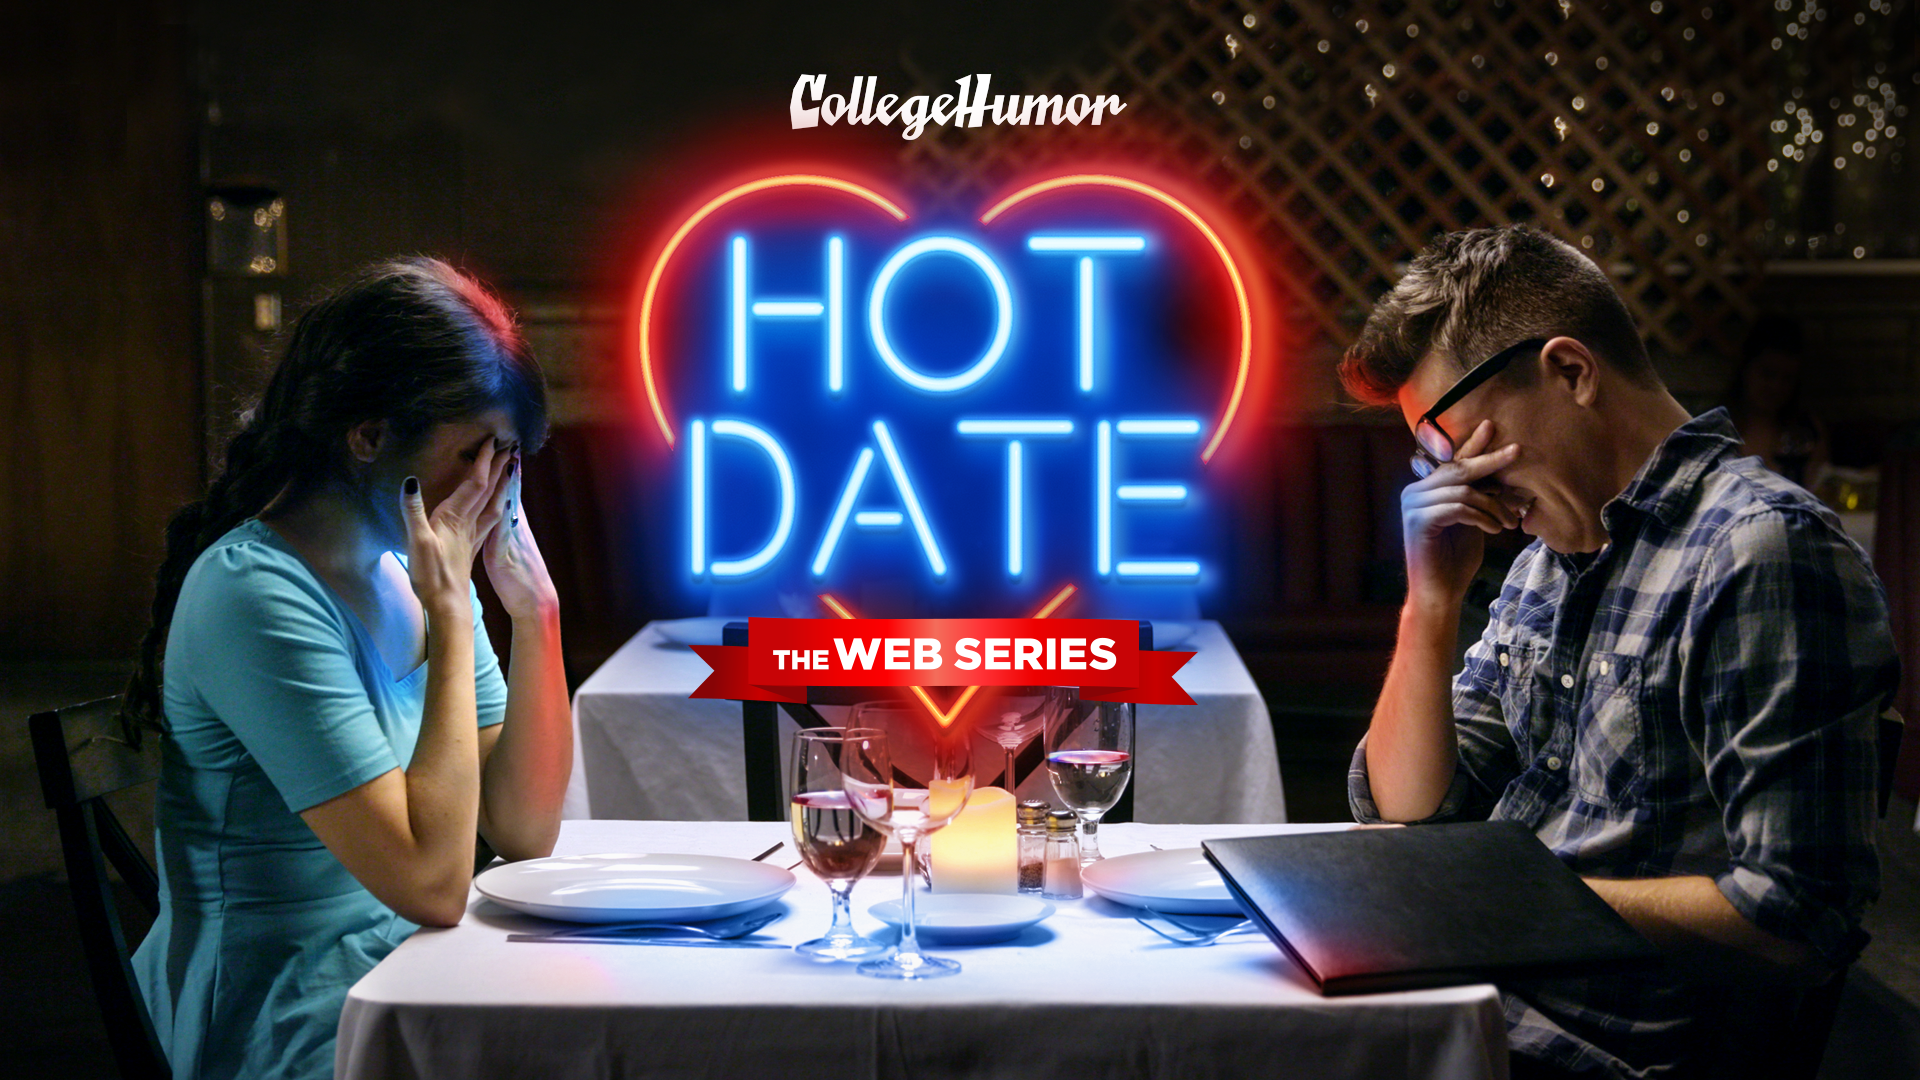 Hot Date: The Web Series